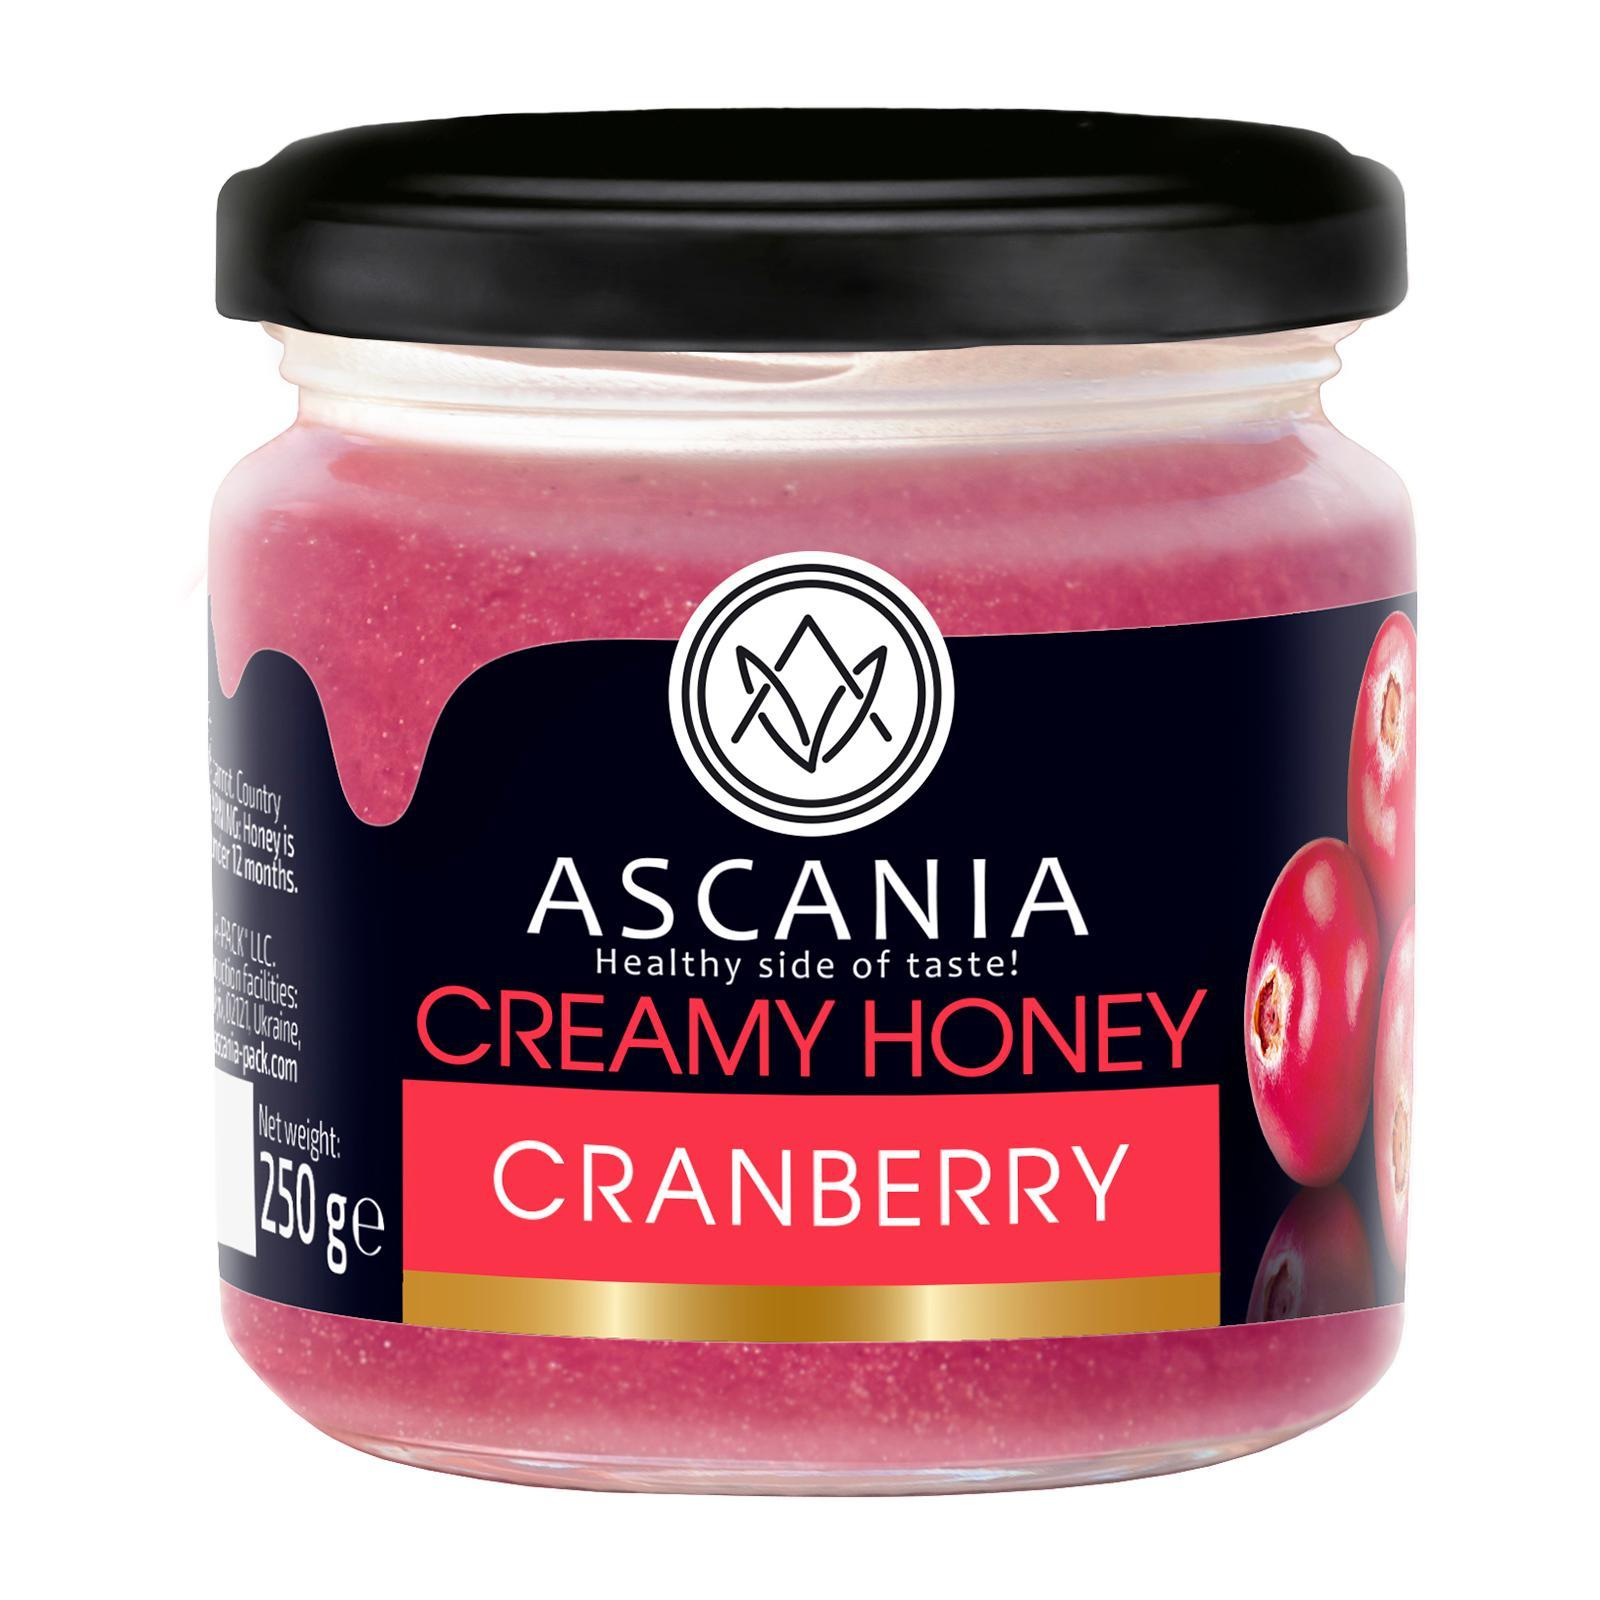 Ascania Creamy Honey With CRANBERRY